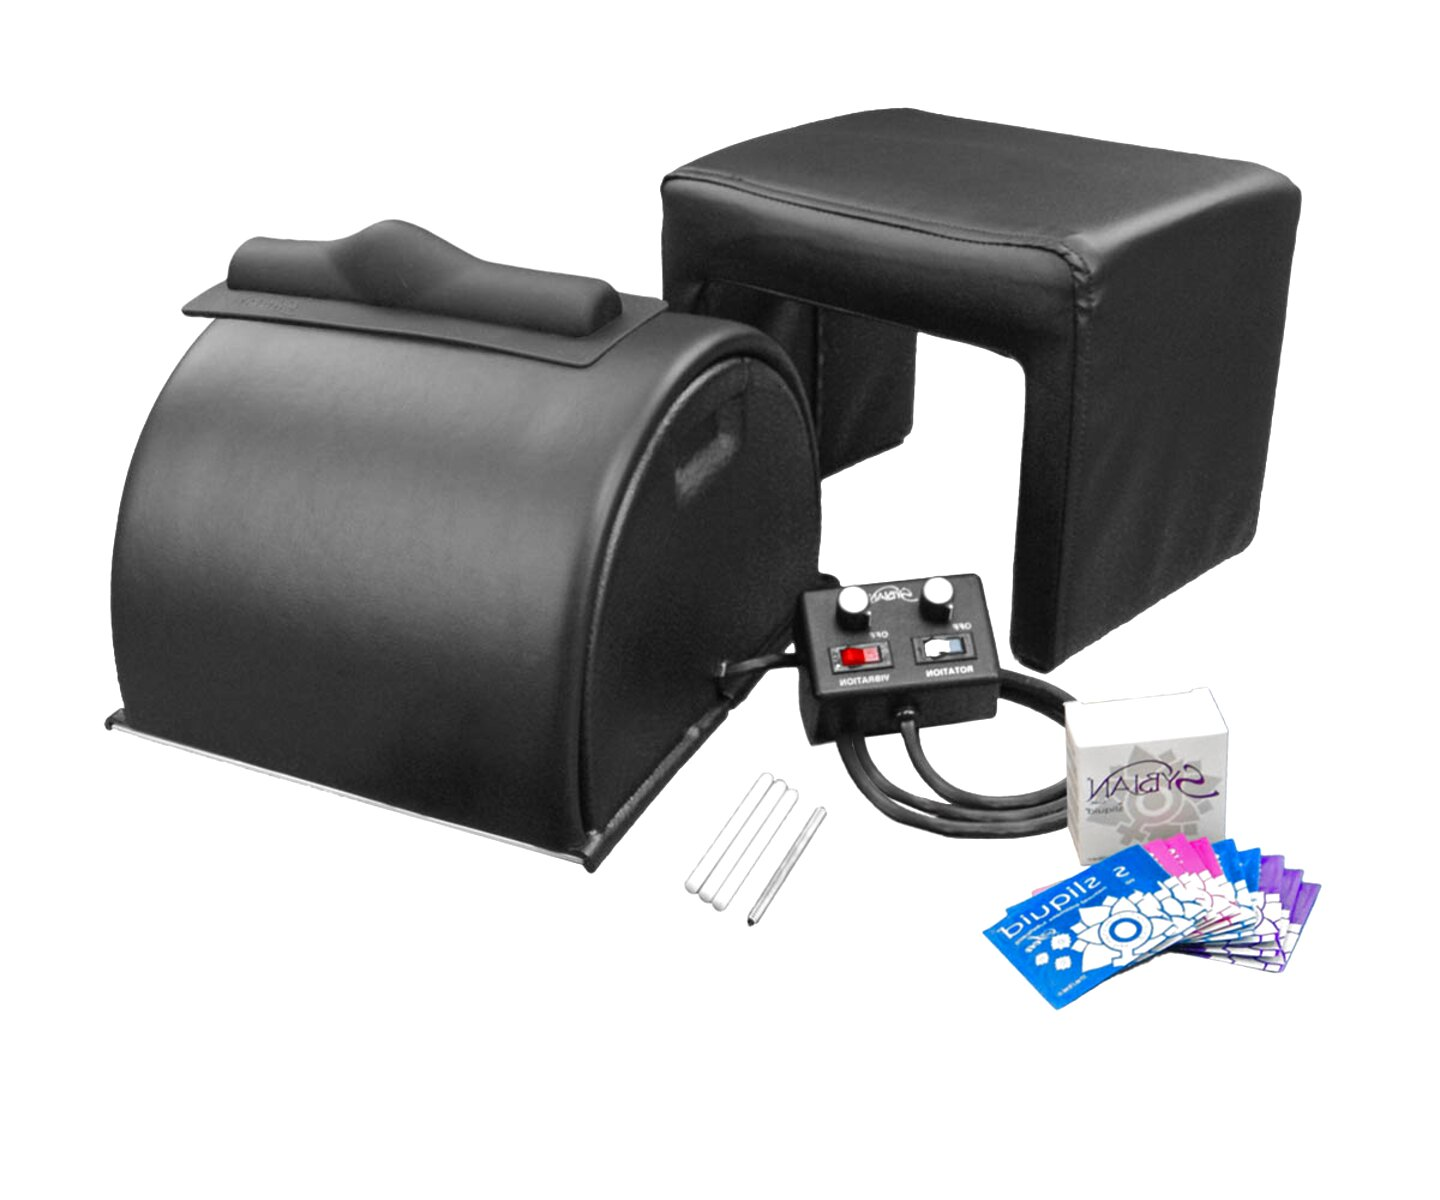 Used sybian